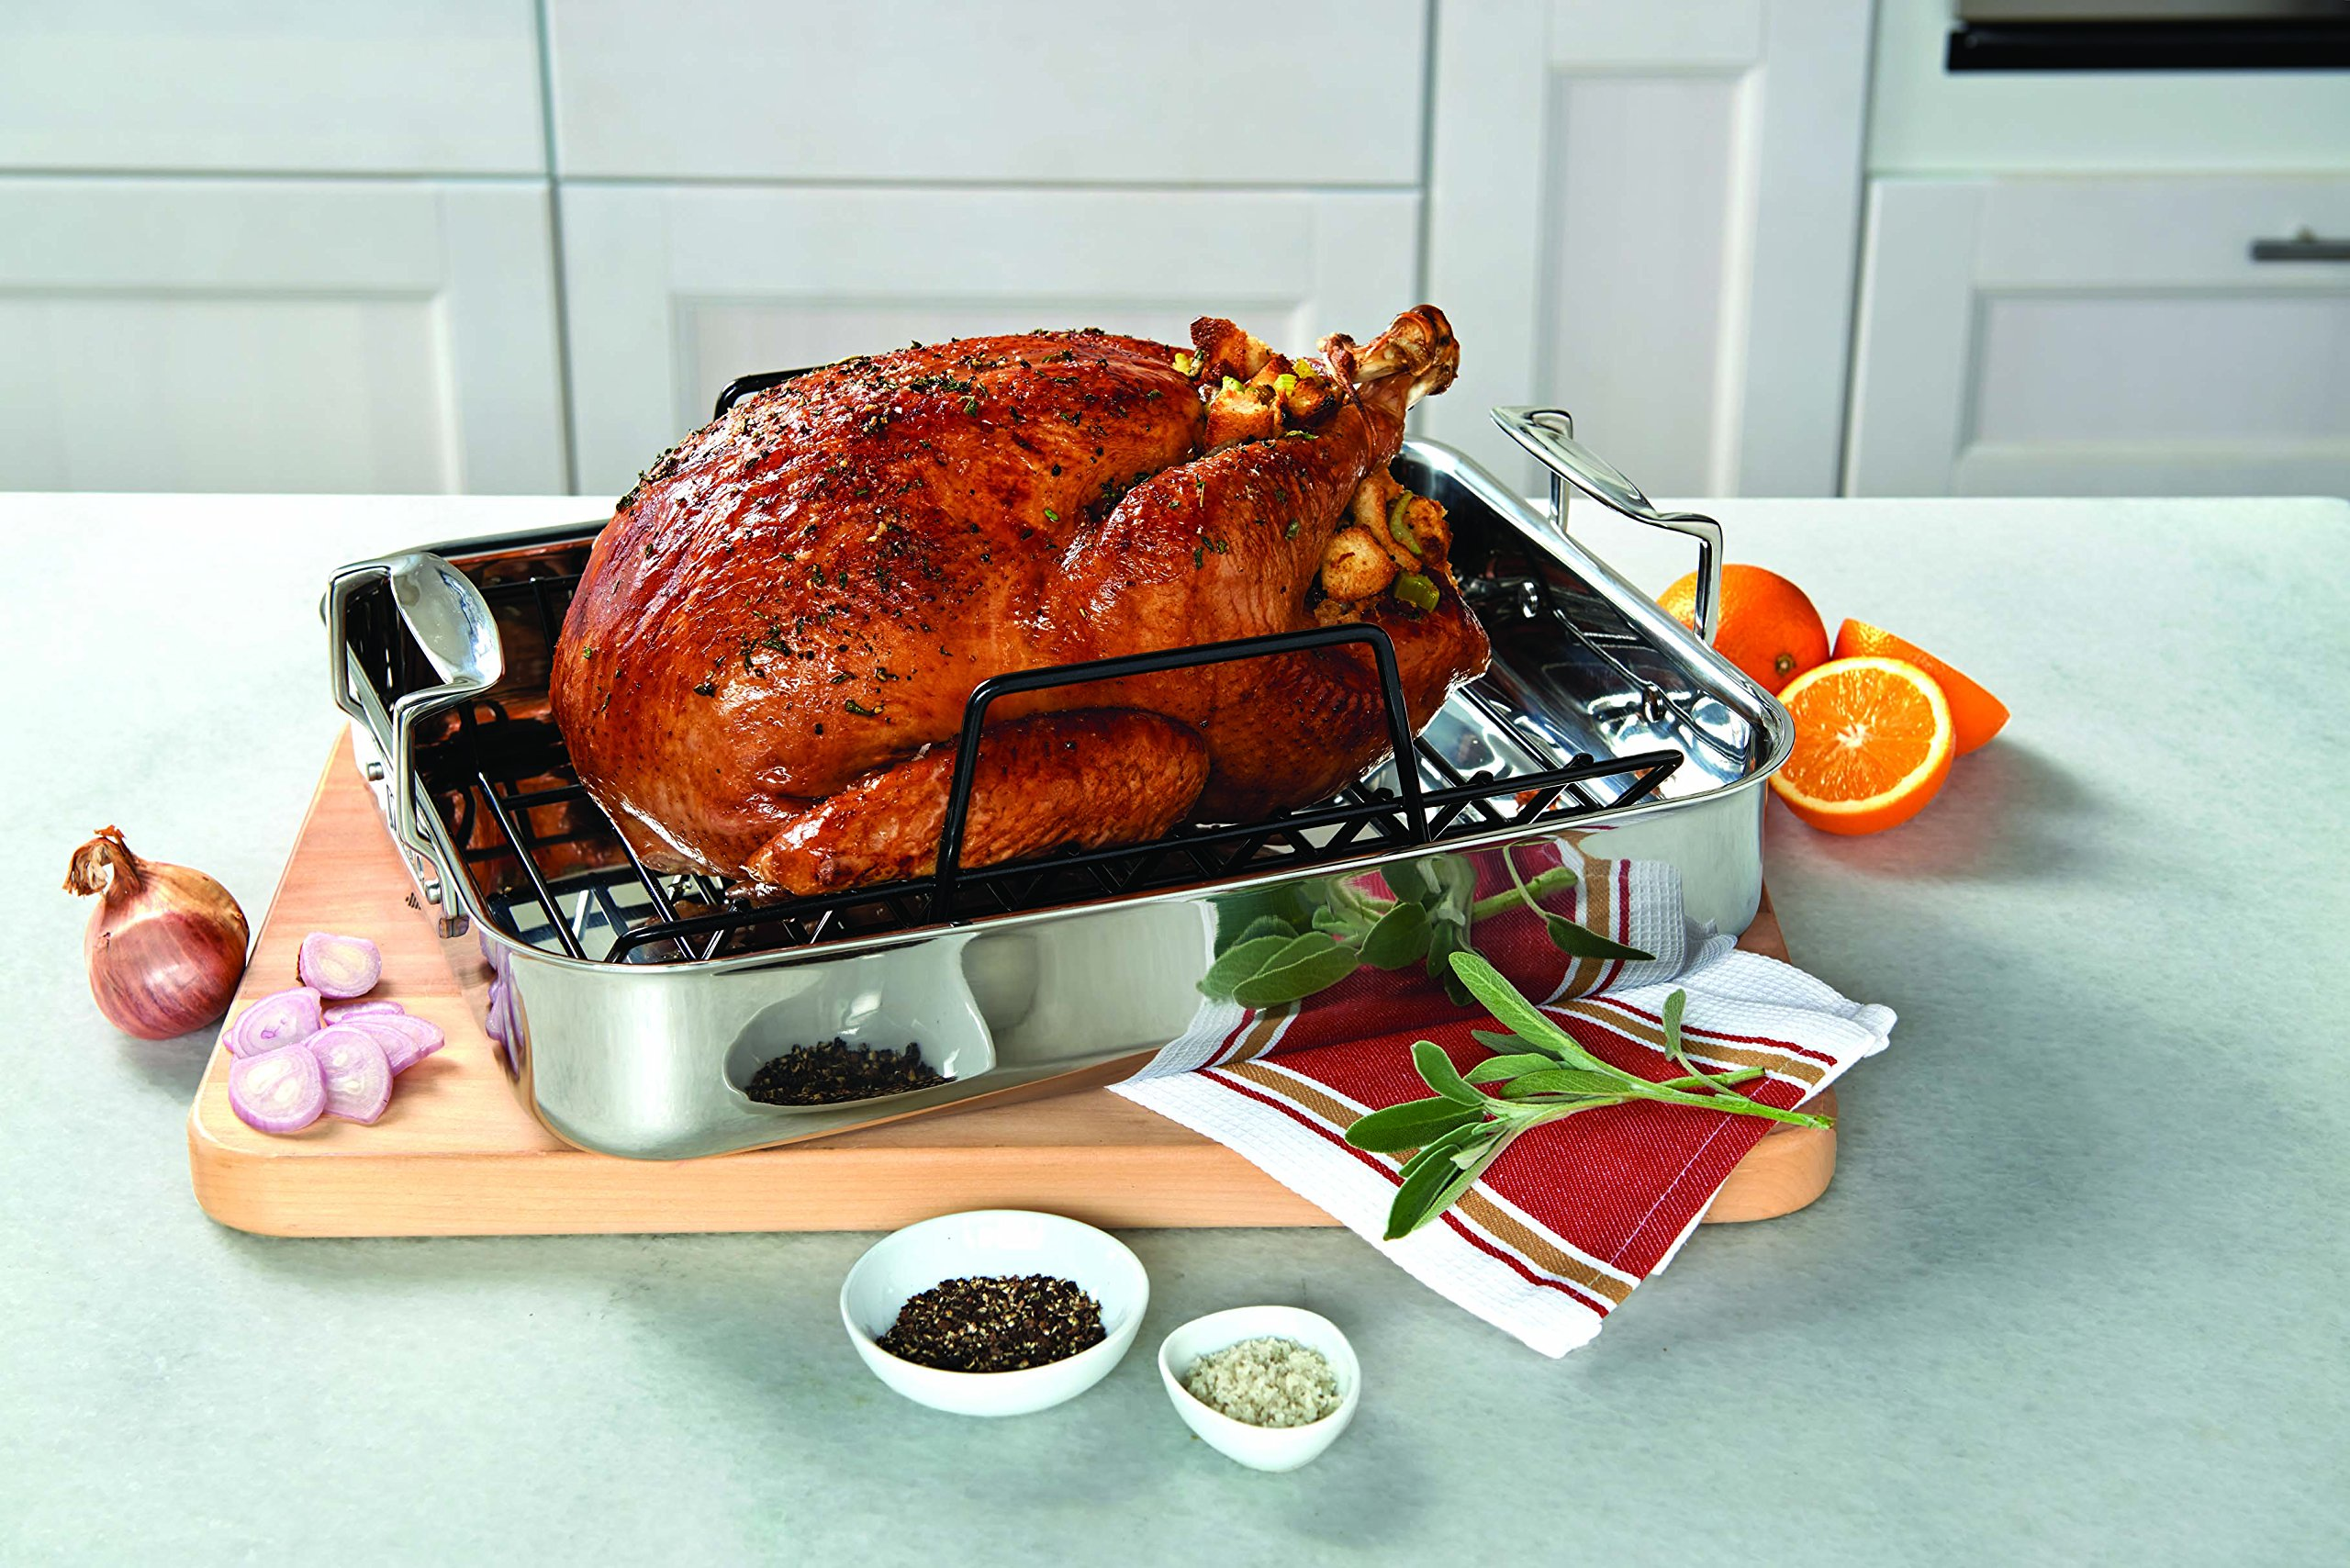 Viking 3-Ply Stainless Steel Roasting Pan with Nonstick Rack, 16 Inch by 13 Inch by Viking Culinary (Image #4)